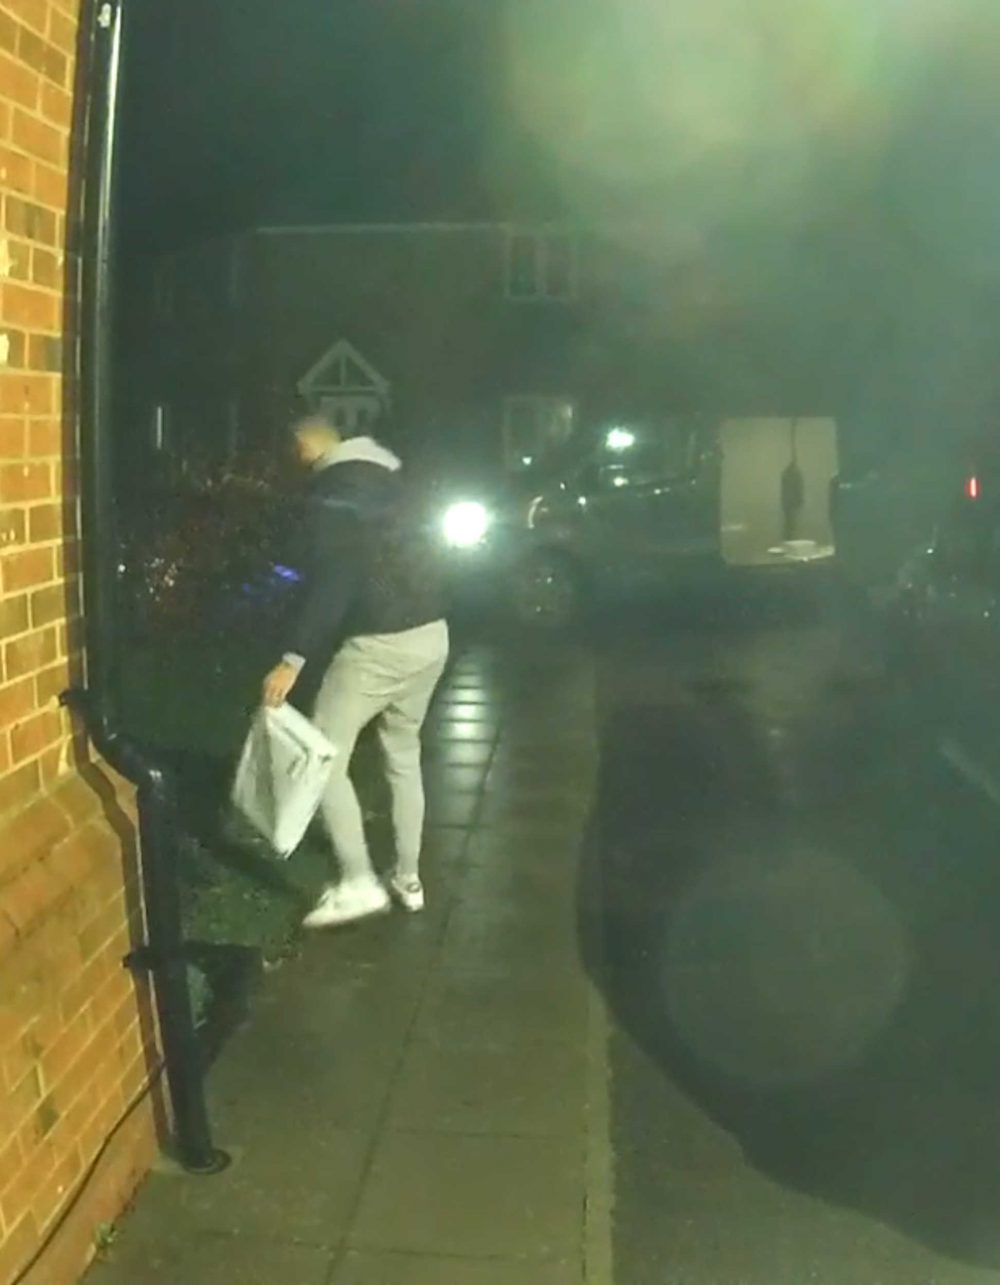 The courier walking away with the package - Viral News uk